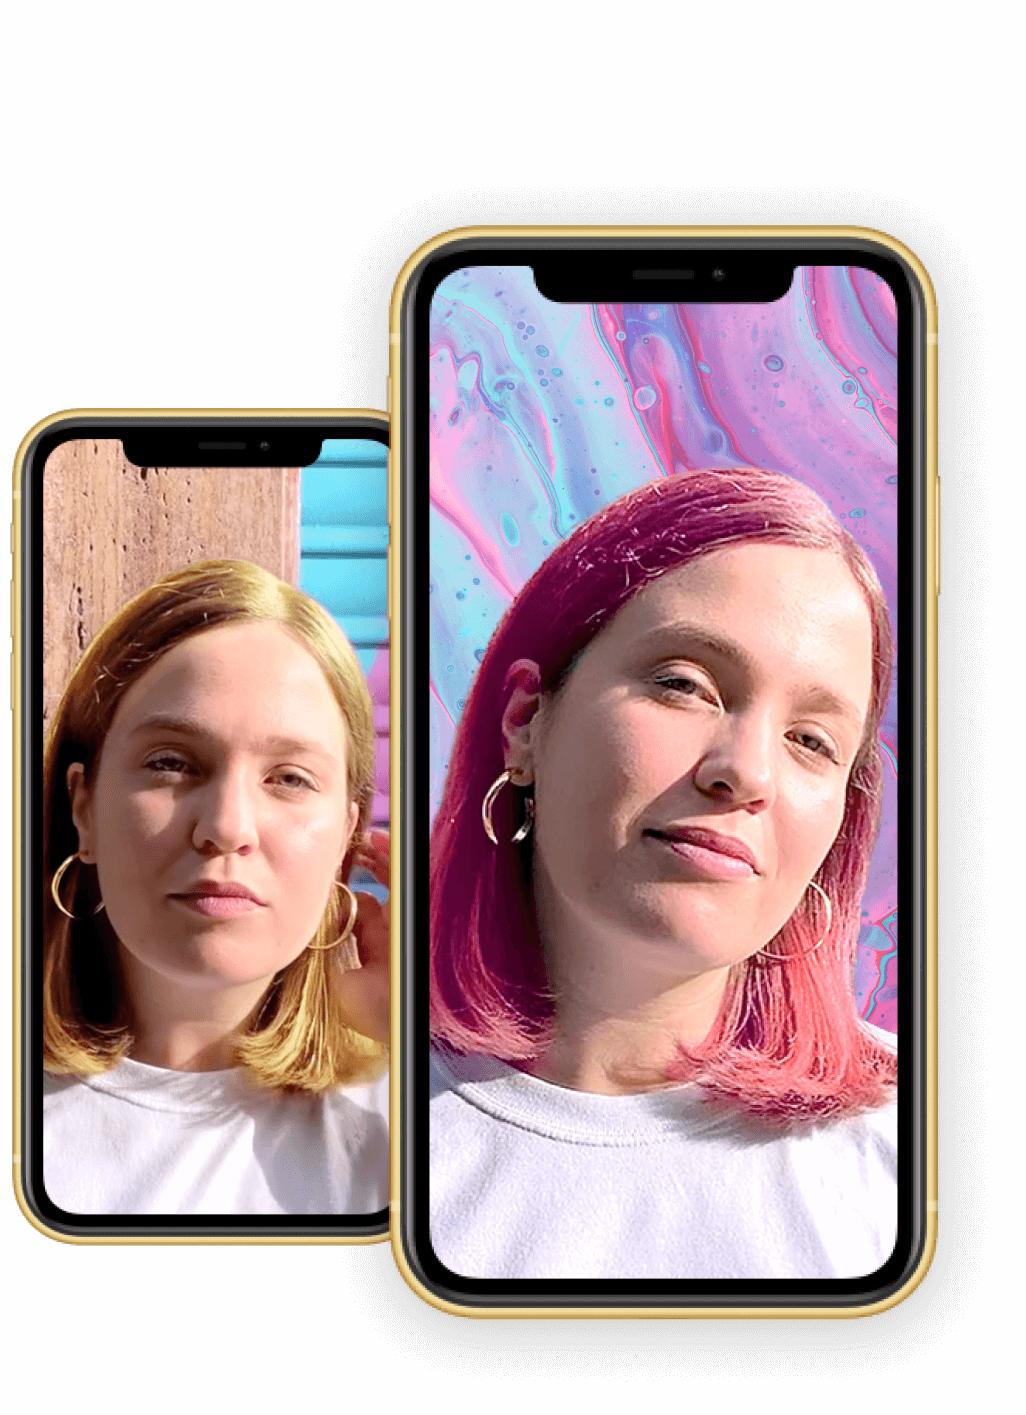 Preview of two iPhones each showing a woman using our Hair Colour Segmentation filters... and loving it!